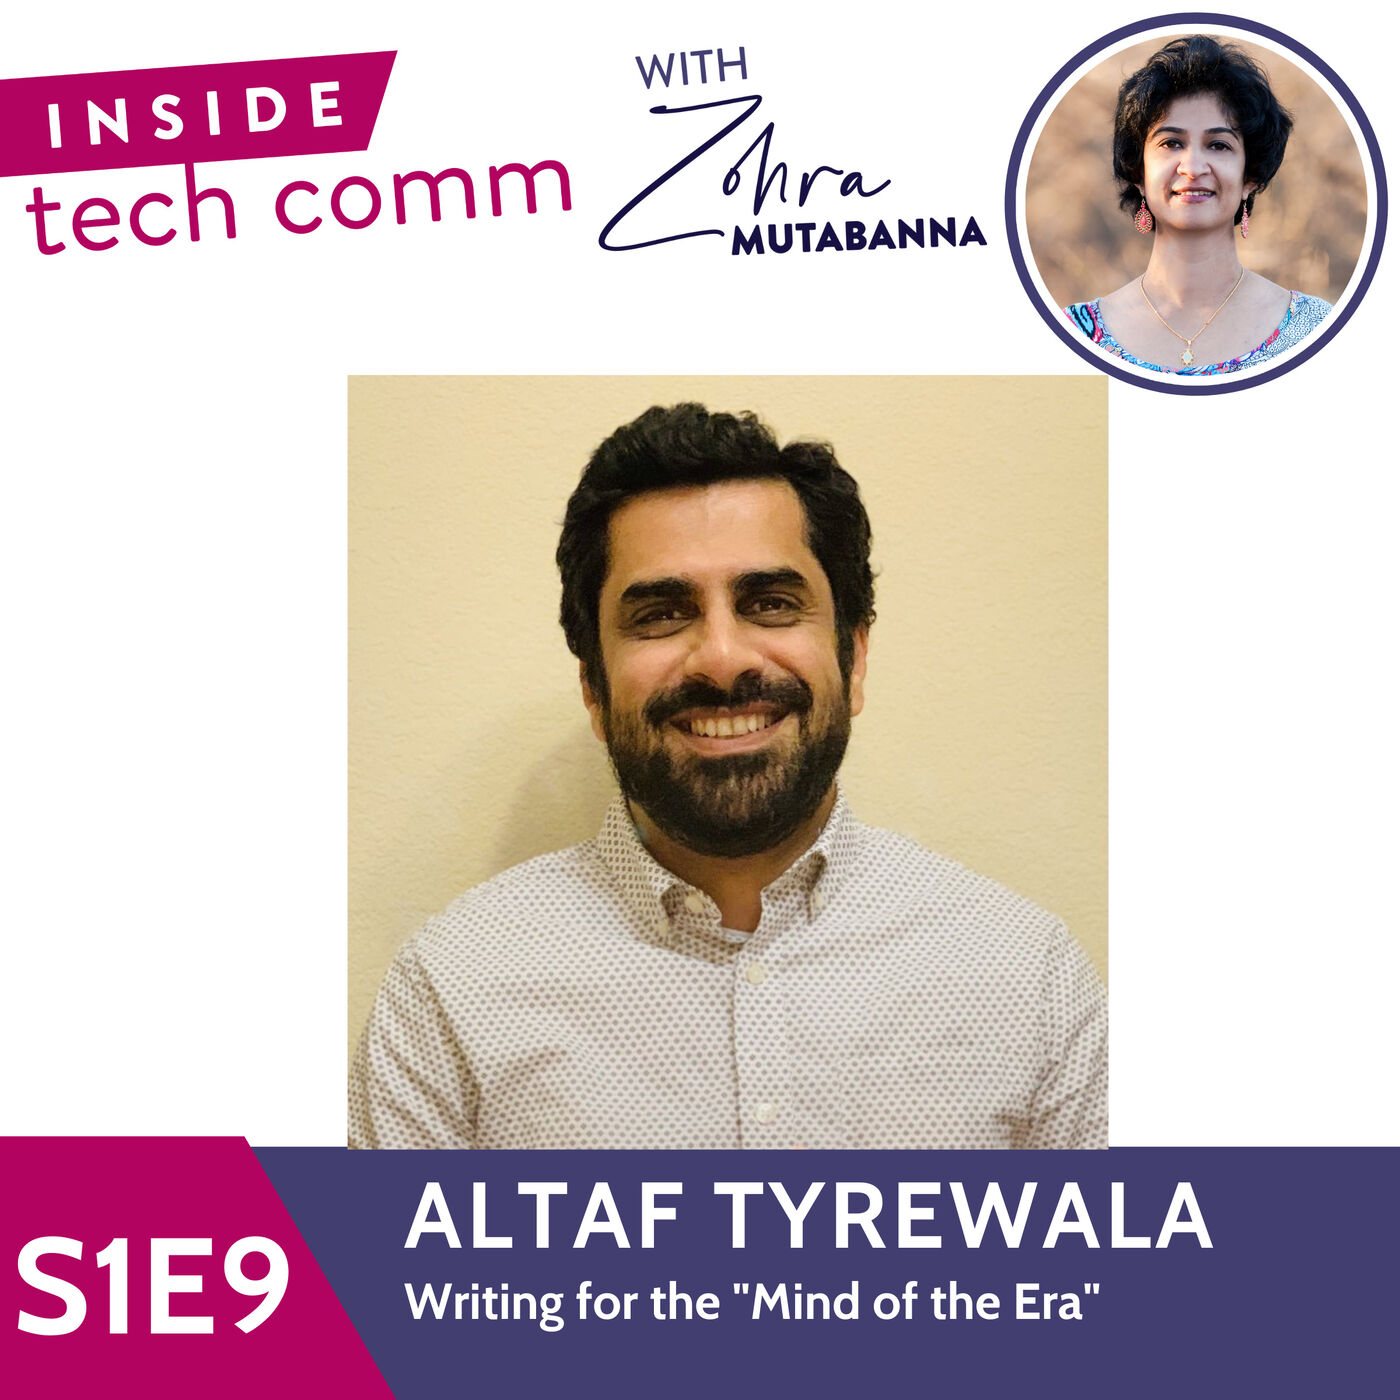 """S1E9 Writing for the """"Mind of the Era"""" with Altaf Tyrewala"""